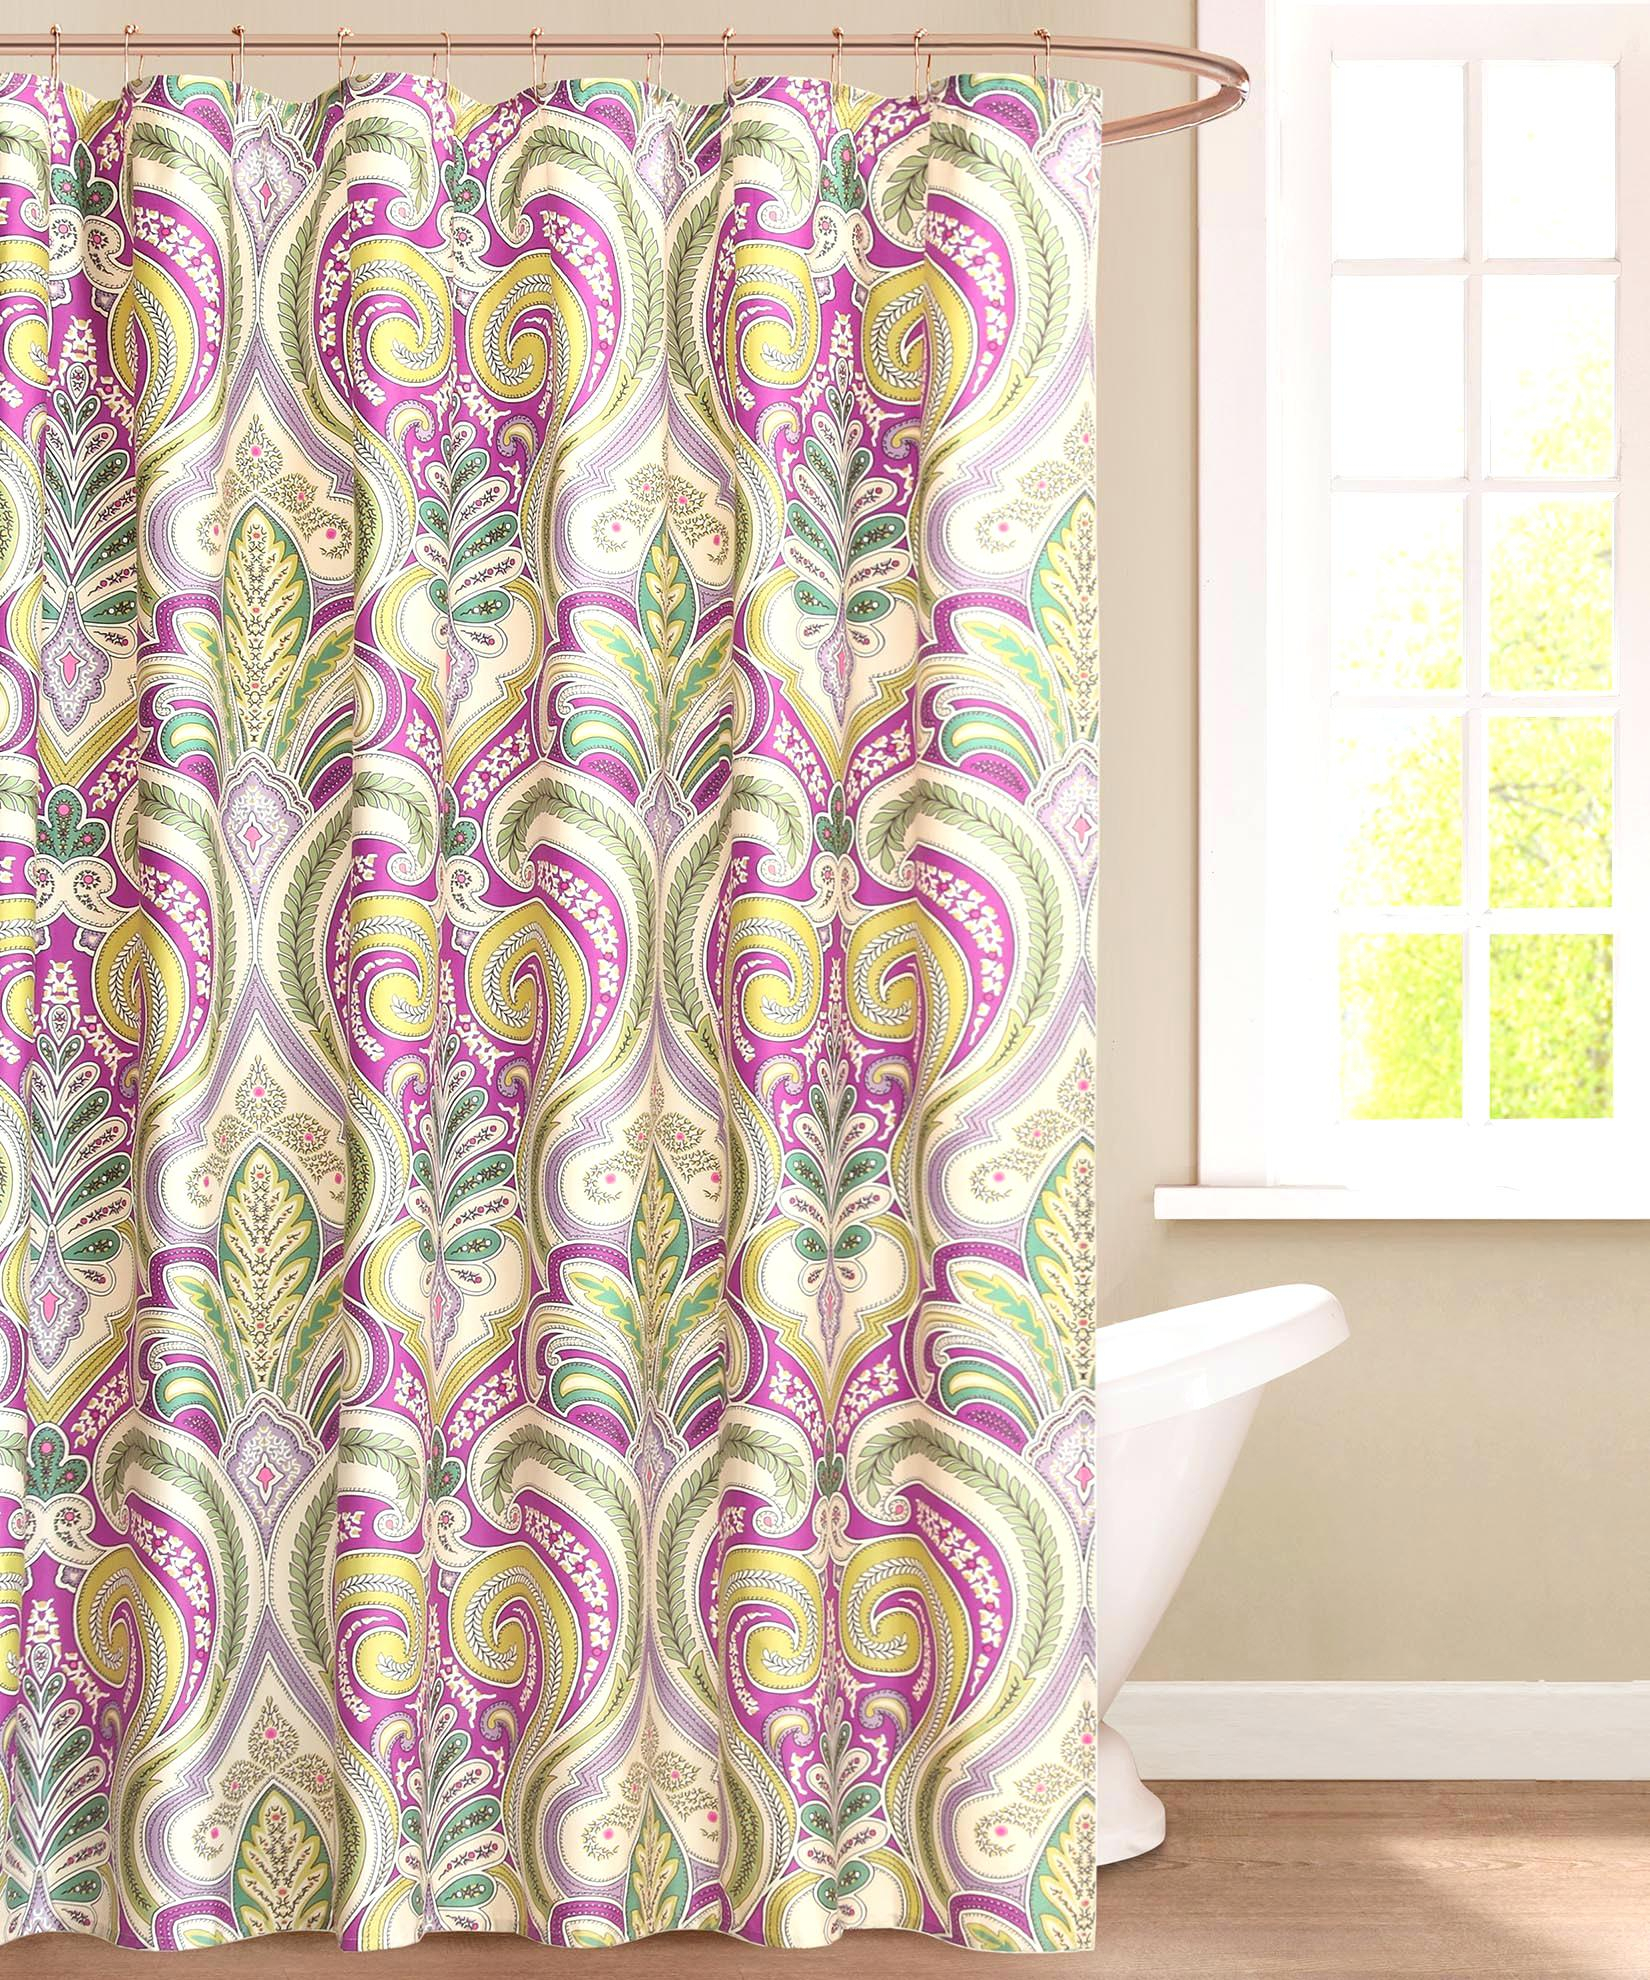 Pink And Brown Paisley Shower Curtain Shower Curtains Design inside sizing 1650 X 1980